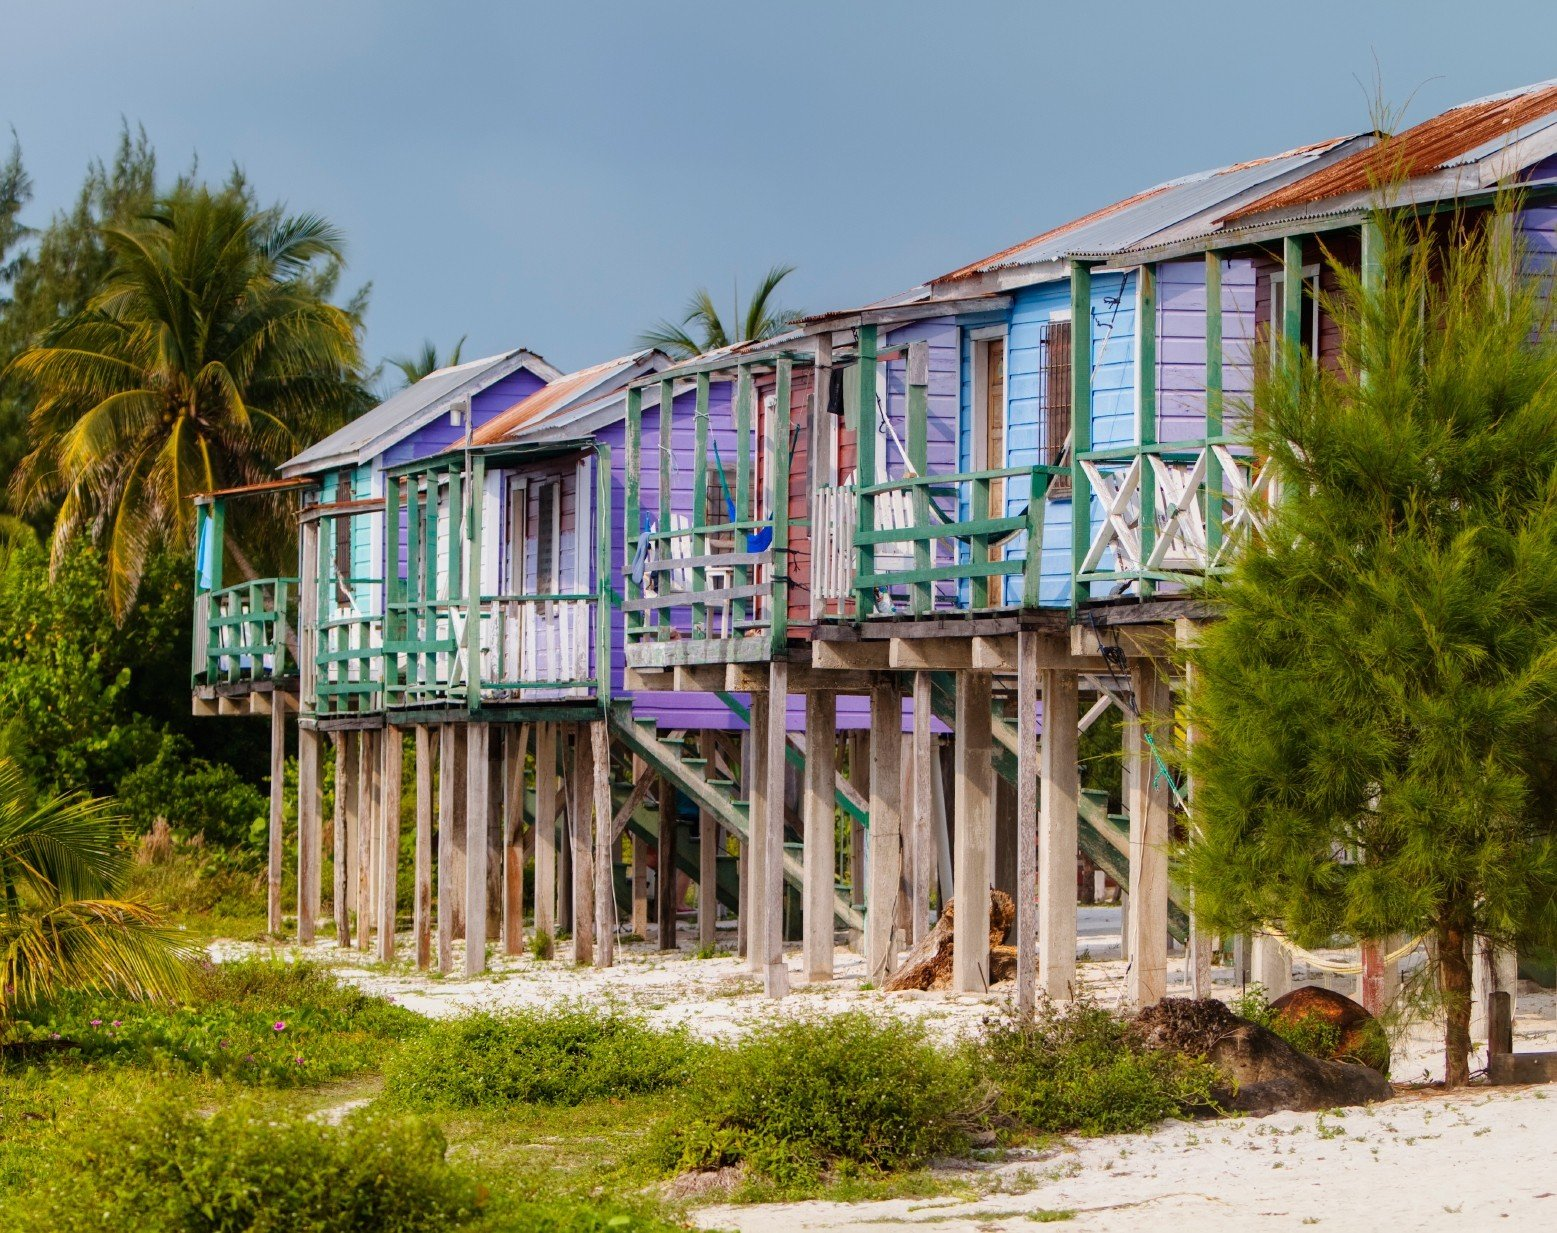 caribbean Secret Getaways Trip Ideas tree outdoor sky grass building house home residential area vacation estate Resort real estate Village cottage walkway shack old